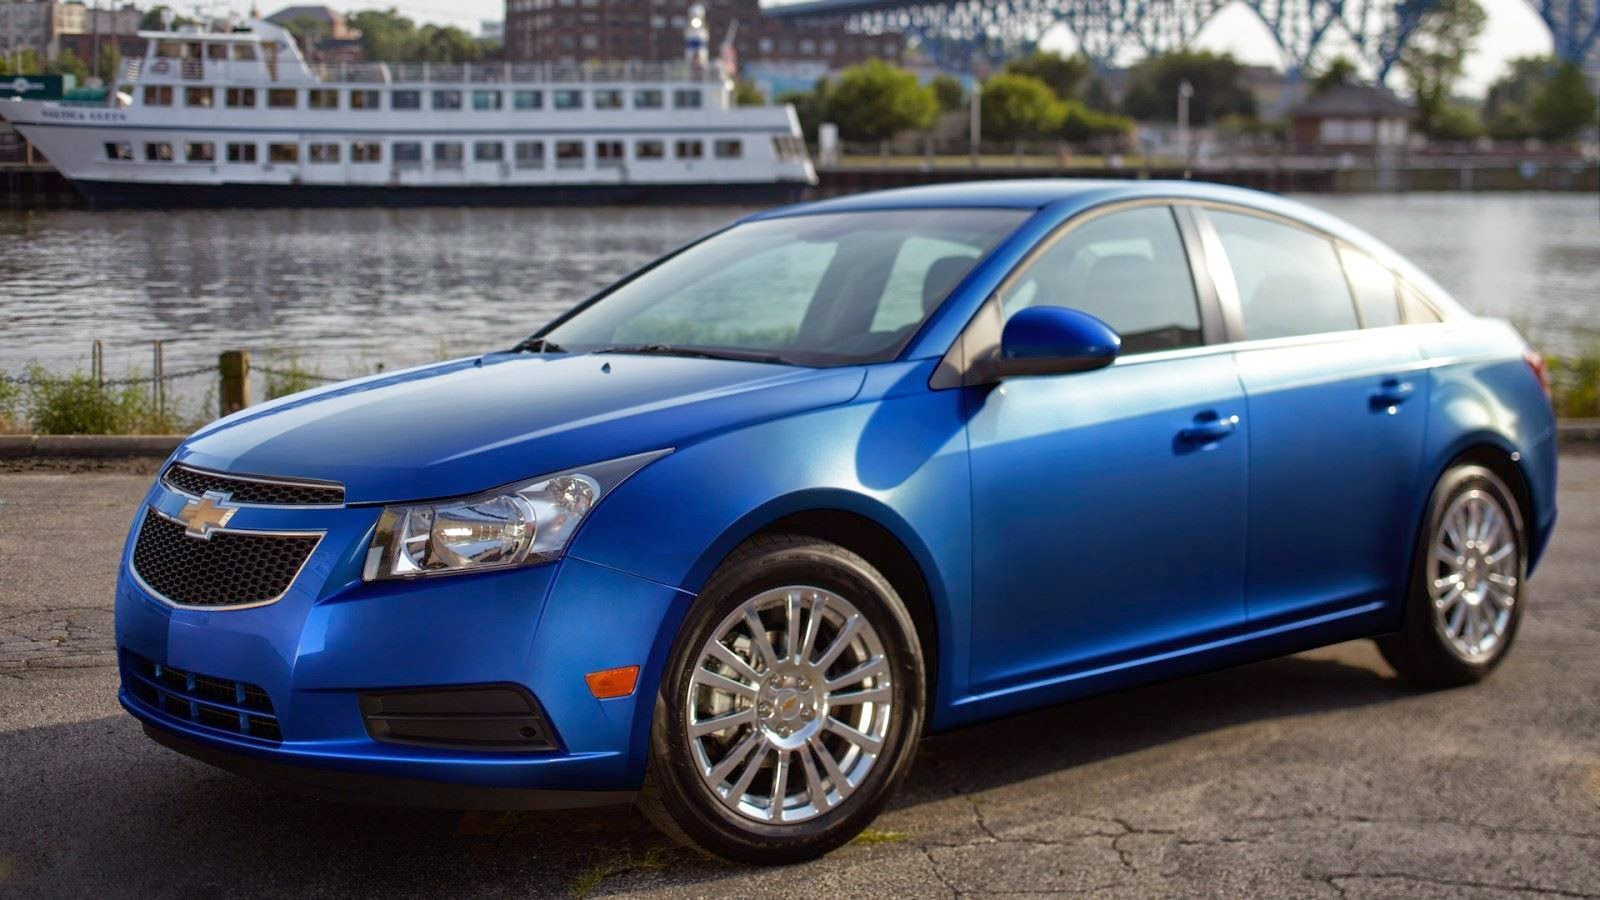 2013 chevy cruze hd wallpapers auto car wallpaper hd. Black Bedroom Furniture Sets. Home Design Ideas